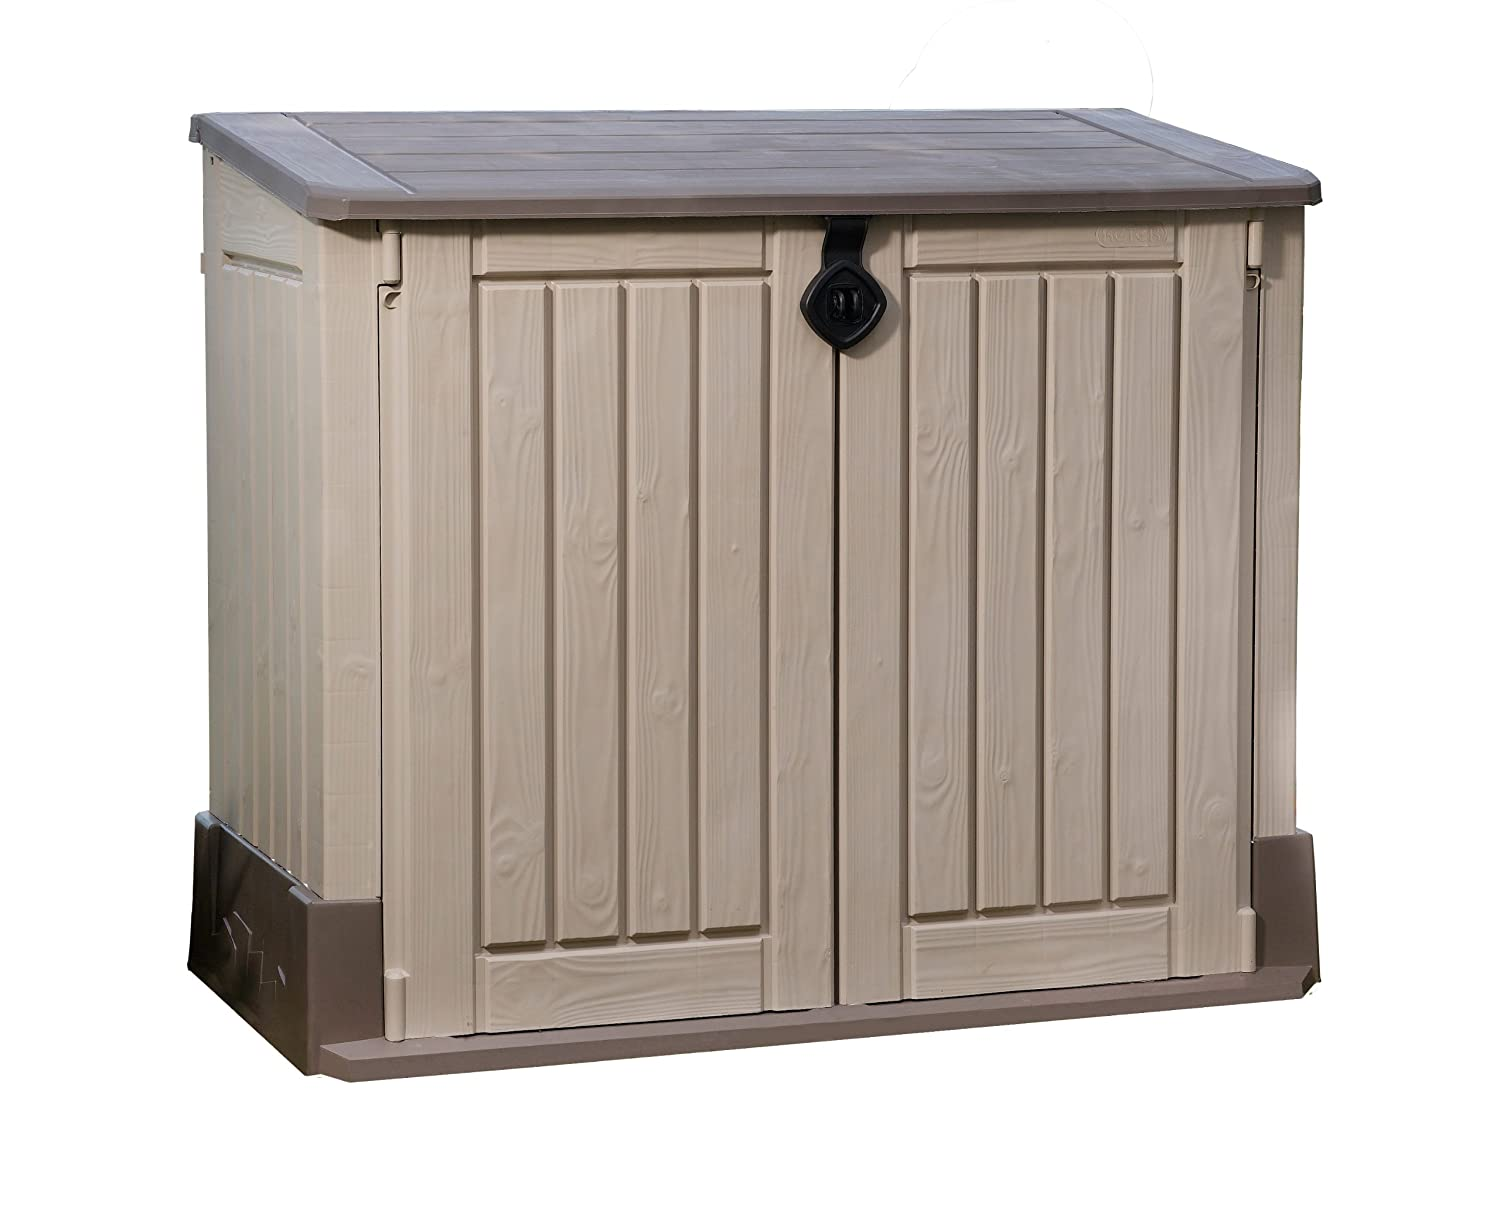 Keter store it out outdoor garden storage tool shed for Outdoor tool shed